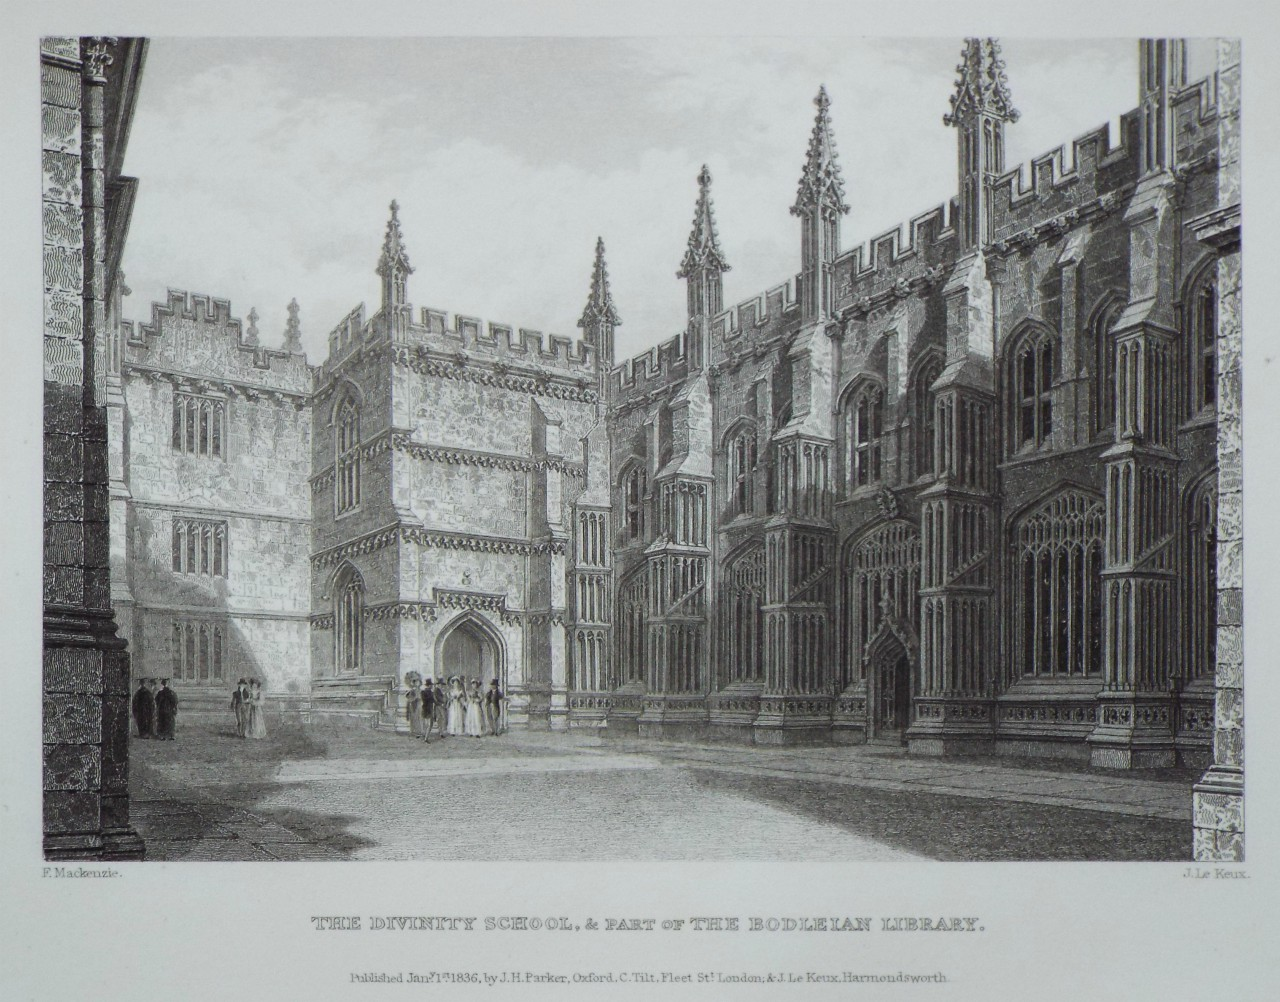 Print - The Divinity School, & Part of the Bodleian Library. - Le